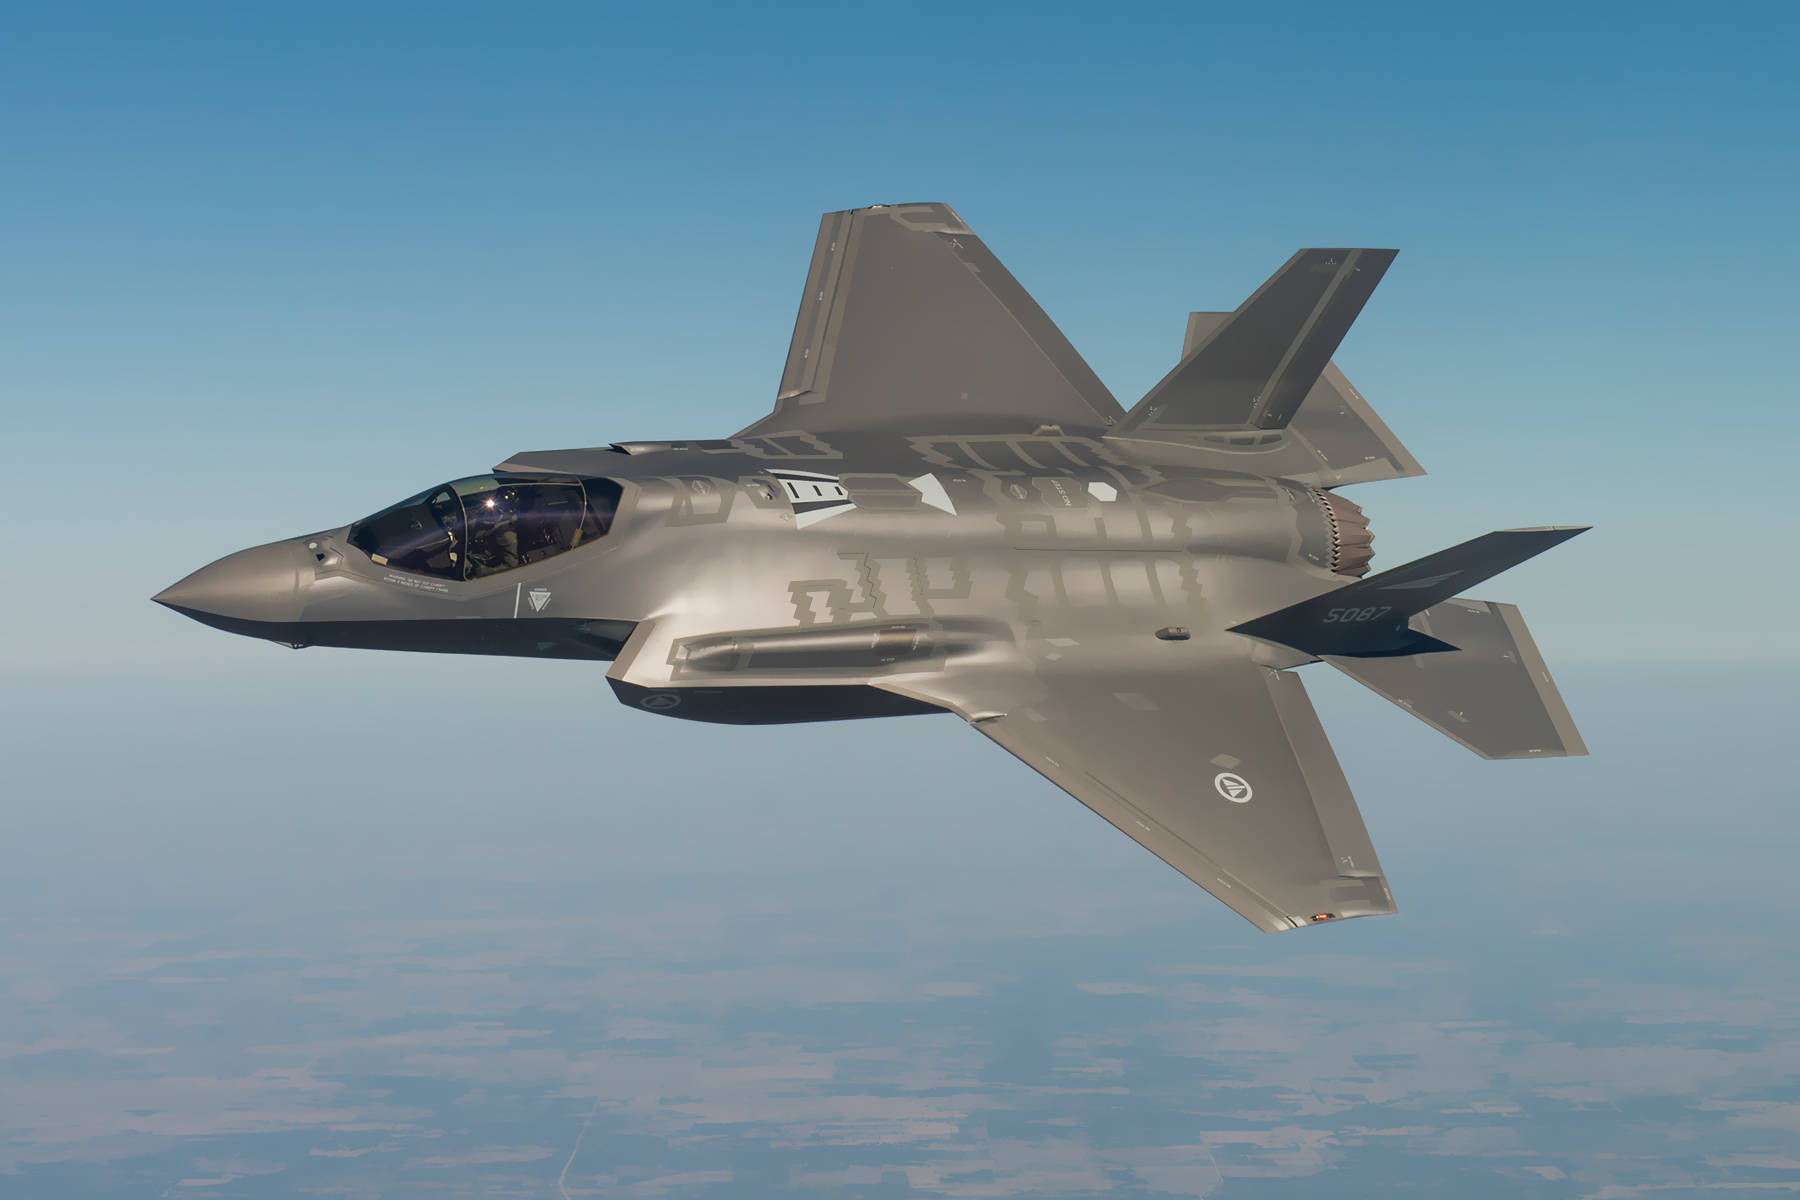 Un F-35, un avion furtif.